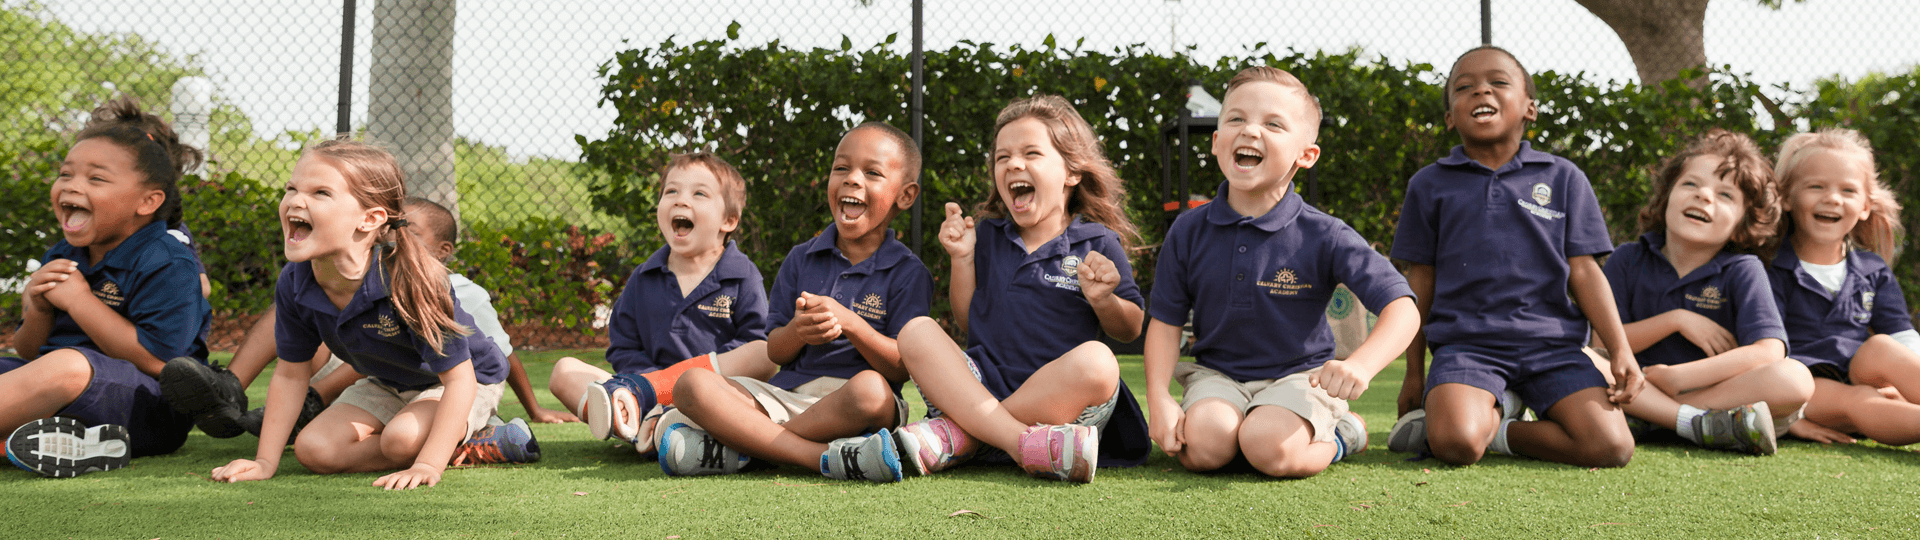 Early Childhood,Smile,STEM,Students